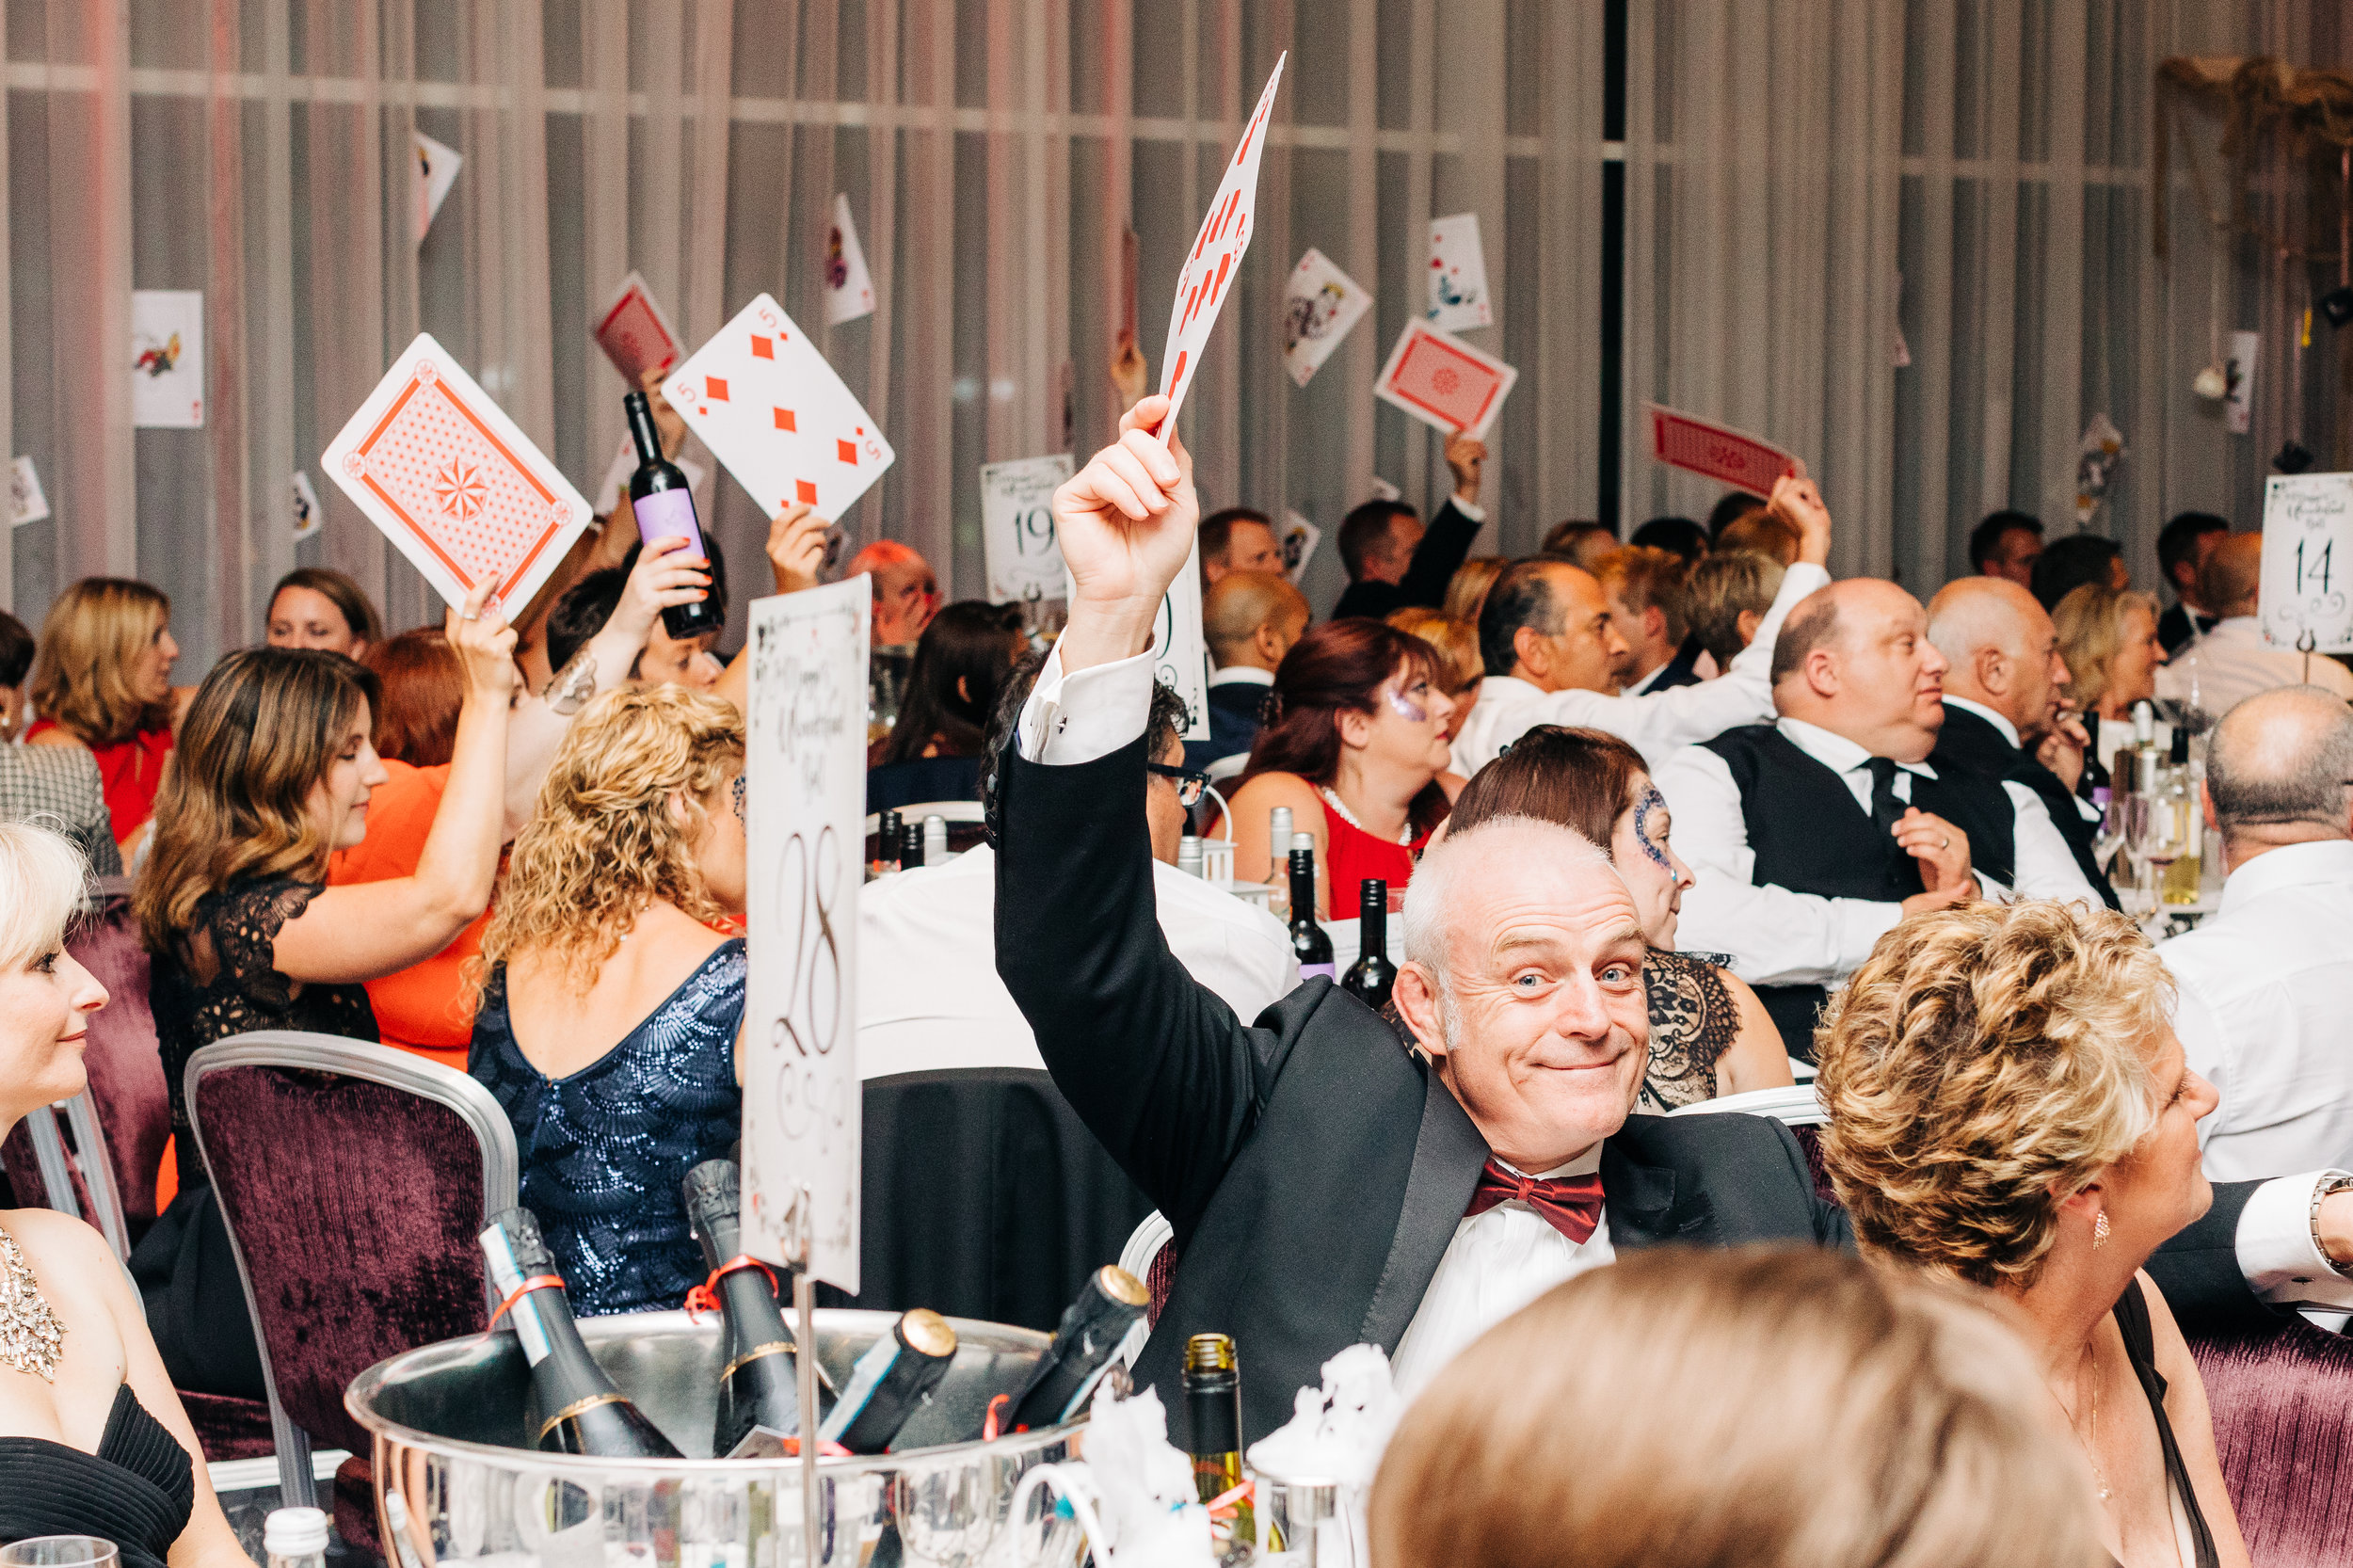 Events Photography - Weddings, live events and launches